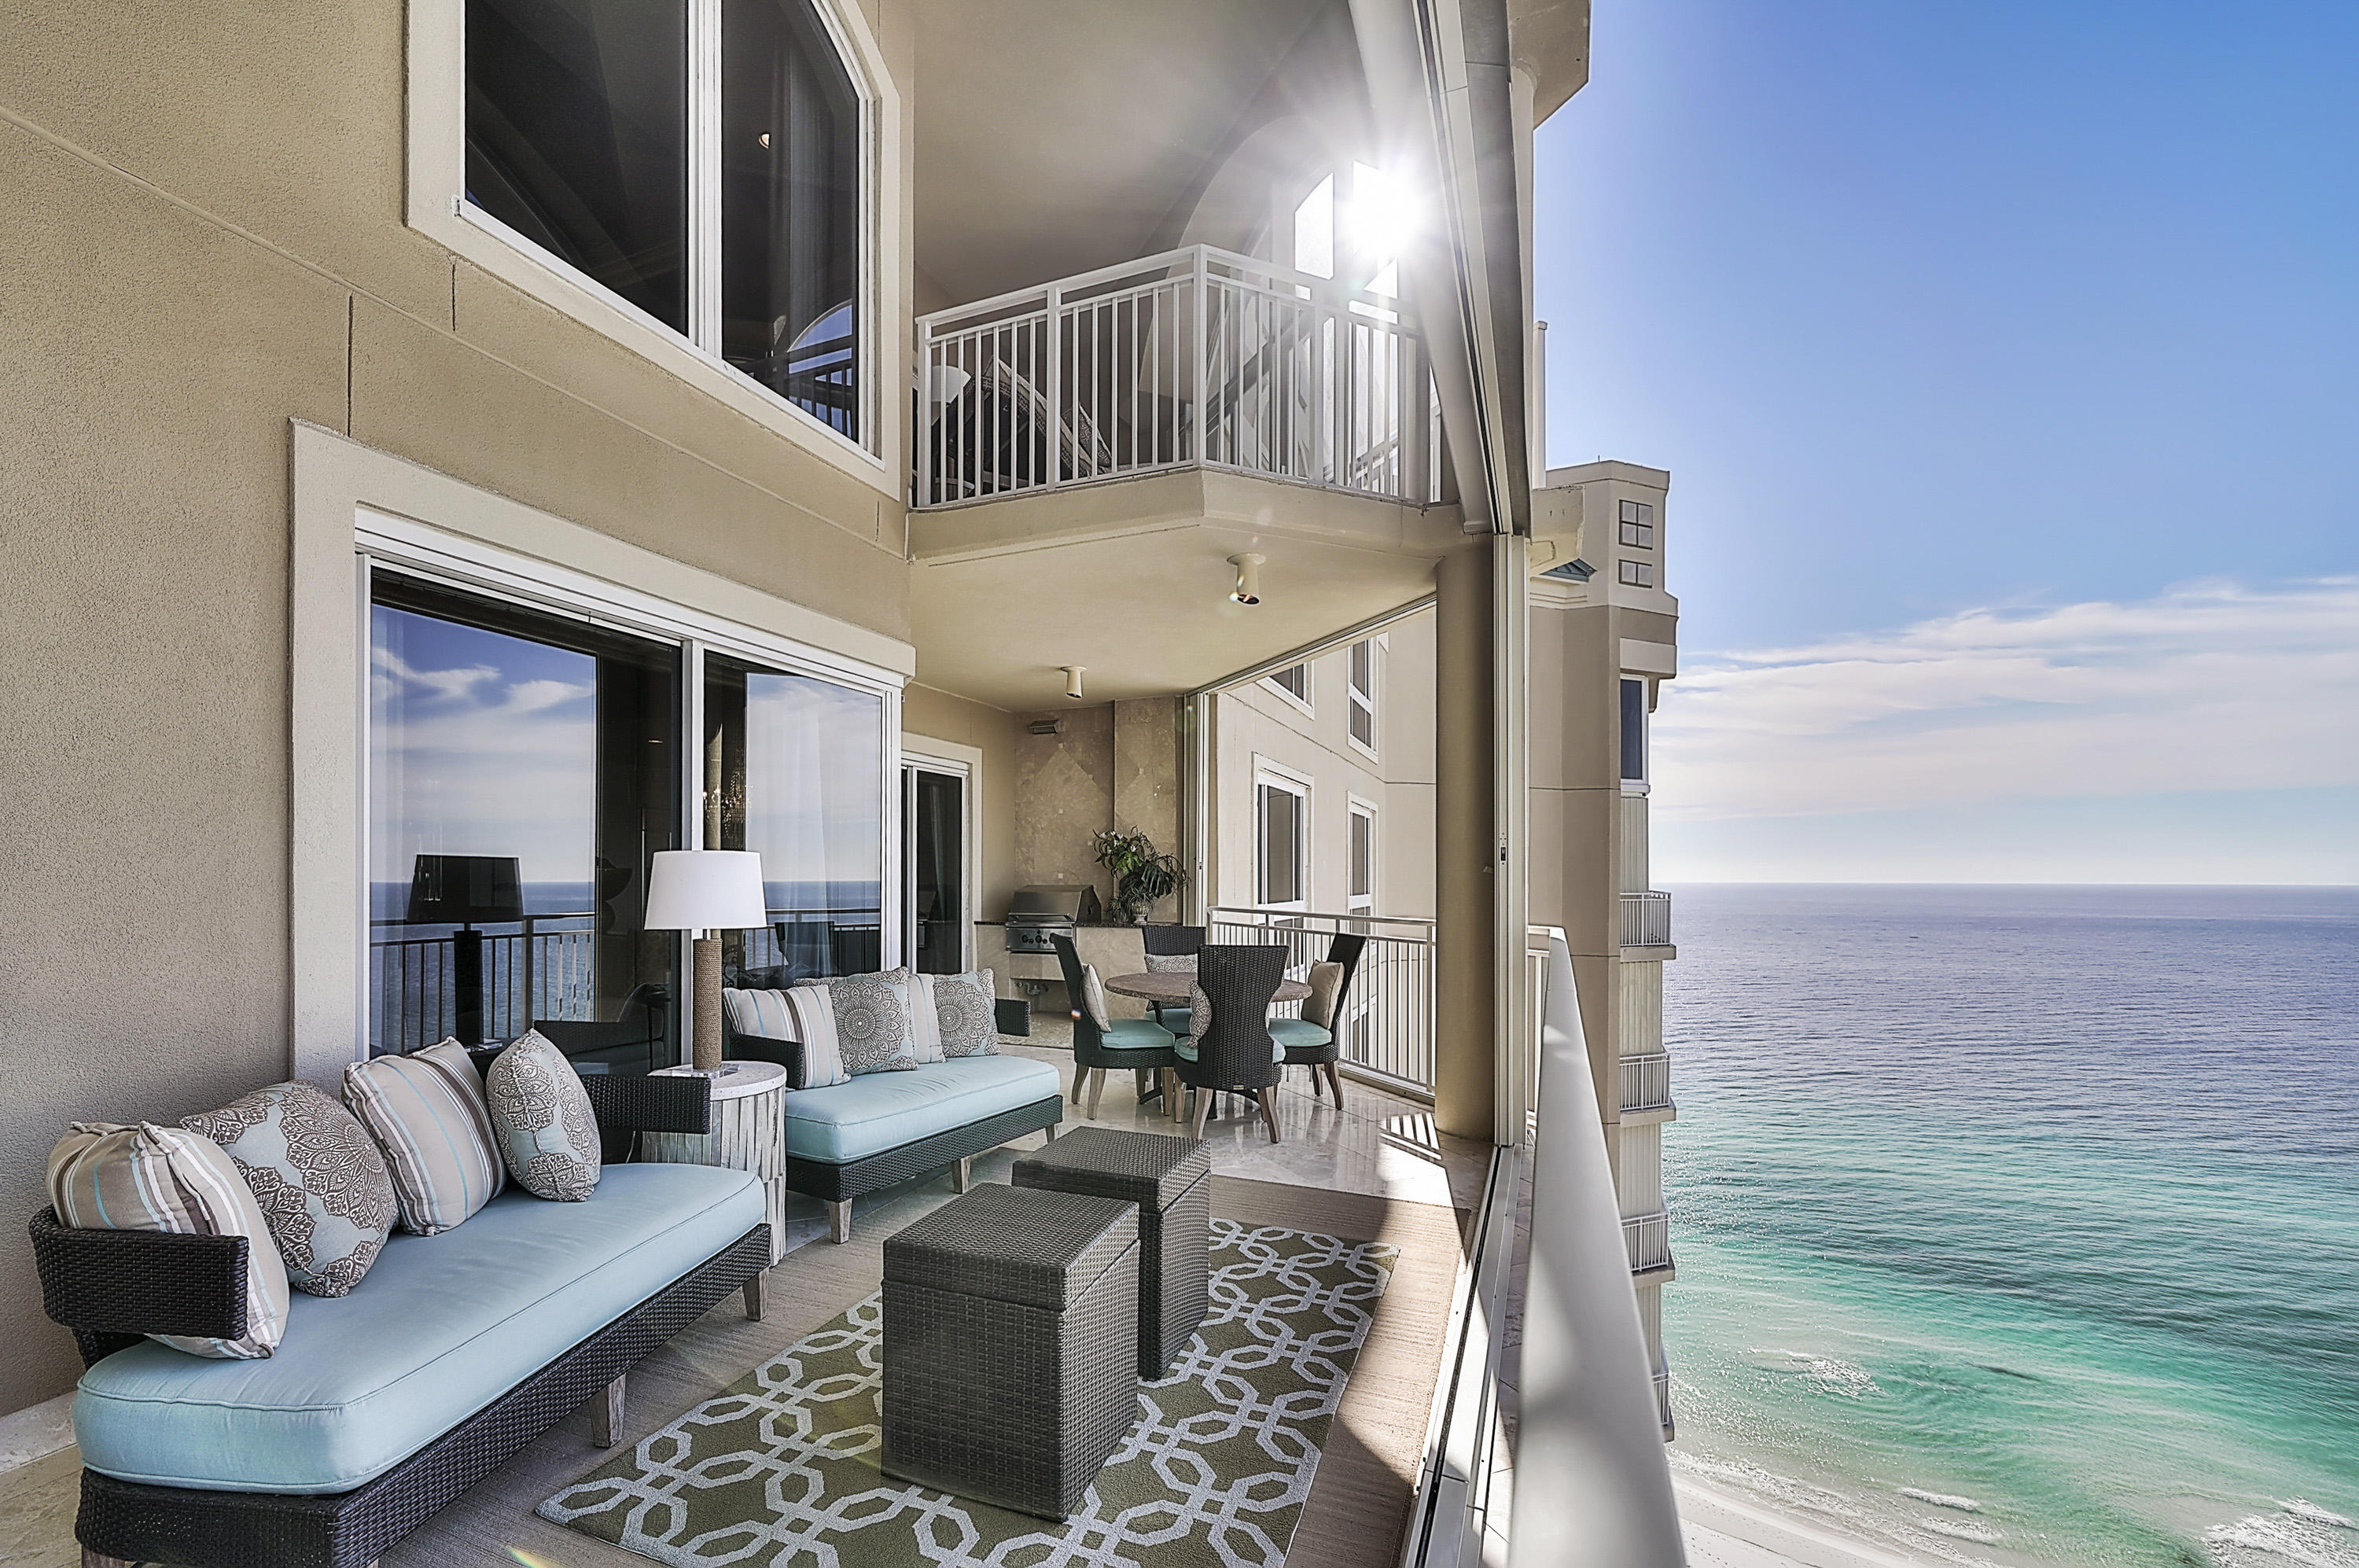 219 Scenic Gulf,Miramar Beach,Florida 32550,6 Bedrooms Bedrooms,5 BathroomsBathrooms,Condominium,Scenic Gulf,20131126143817002353000000